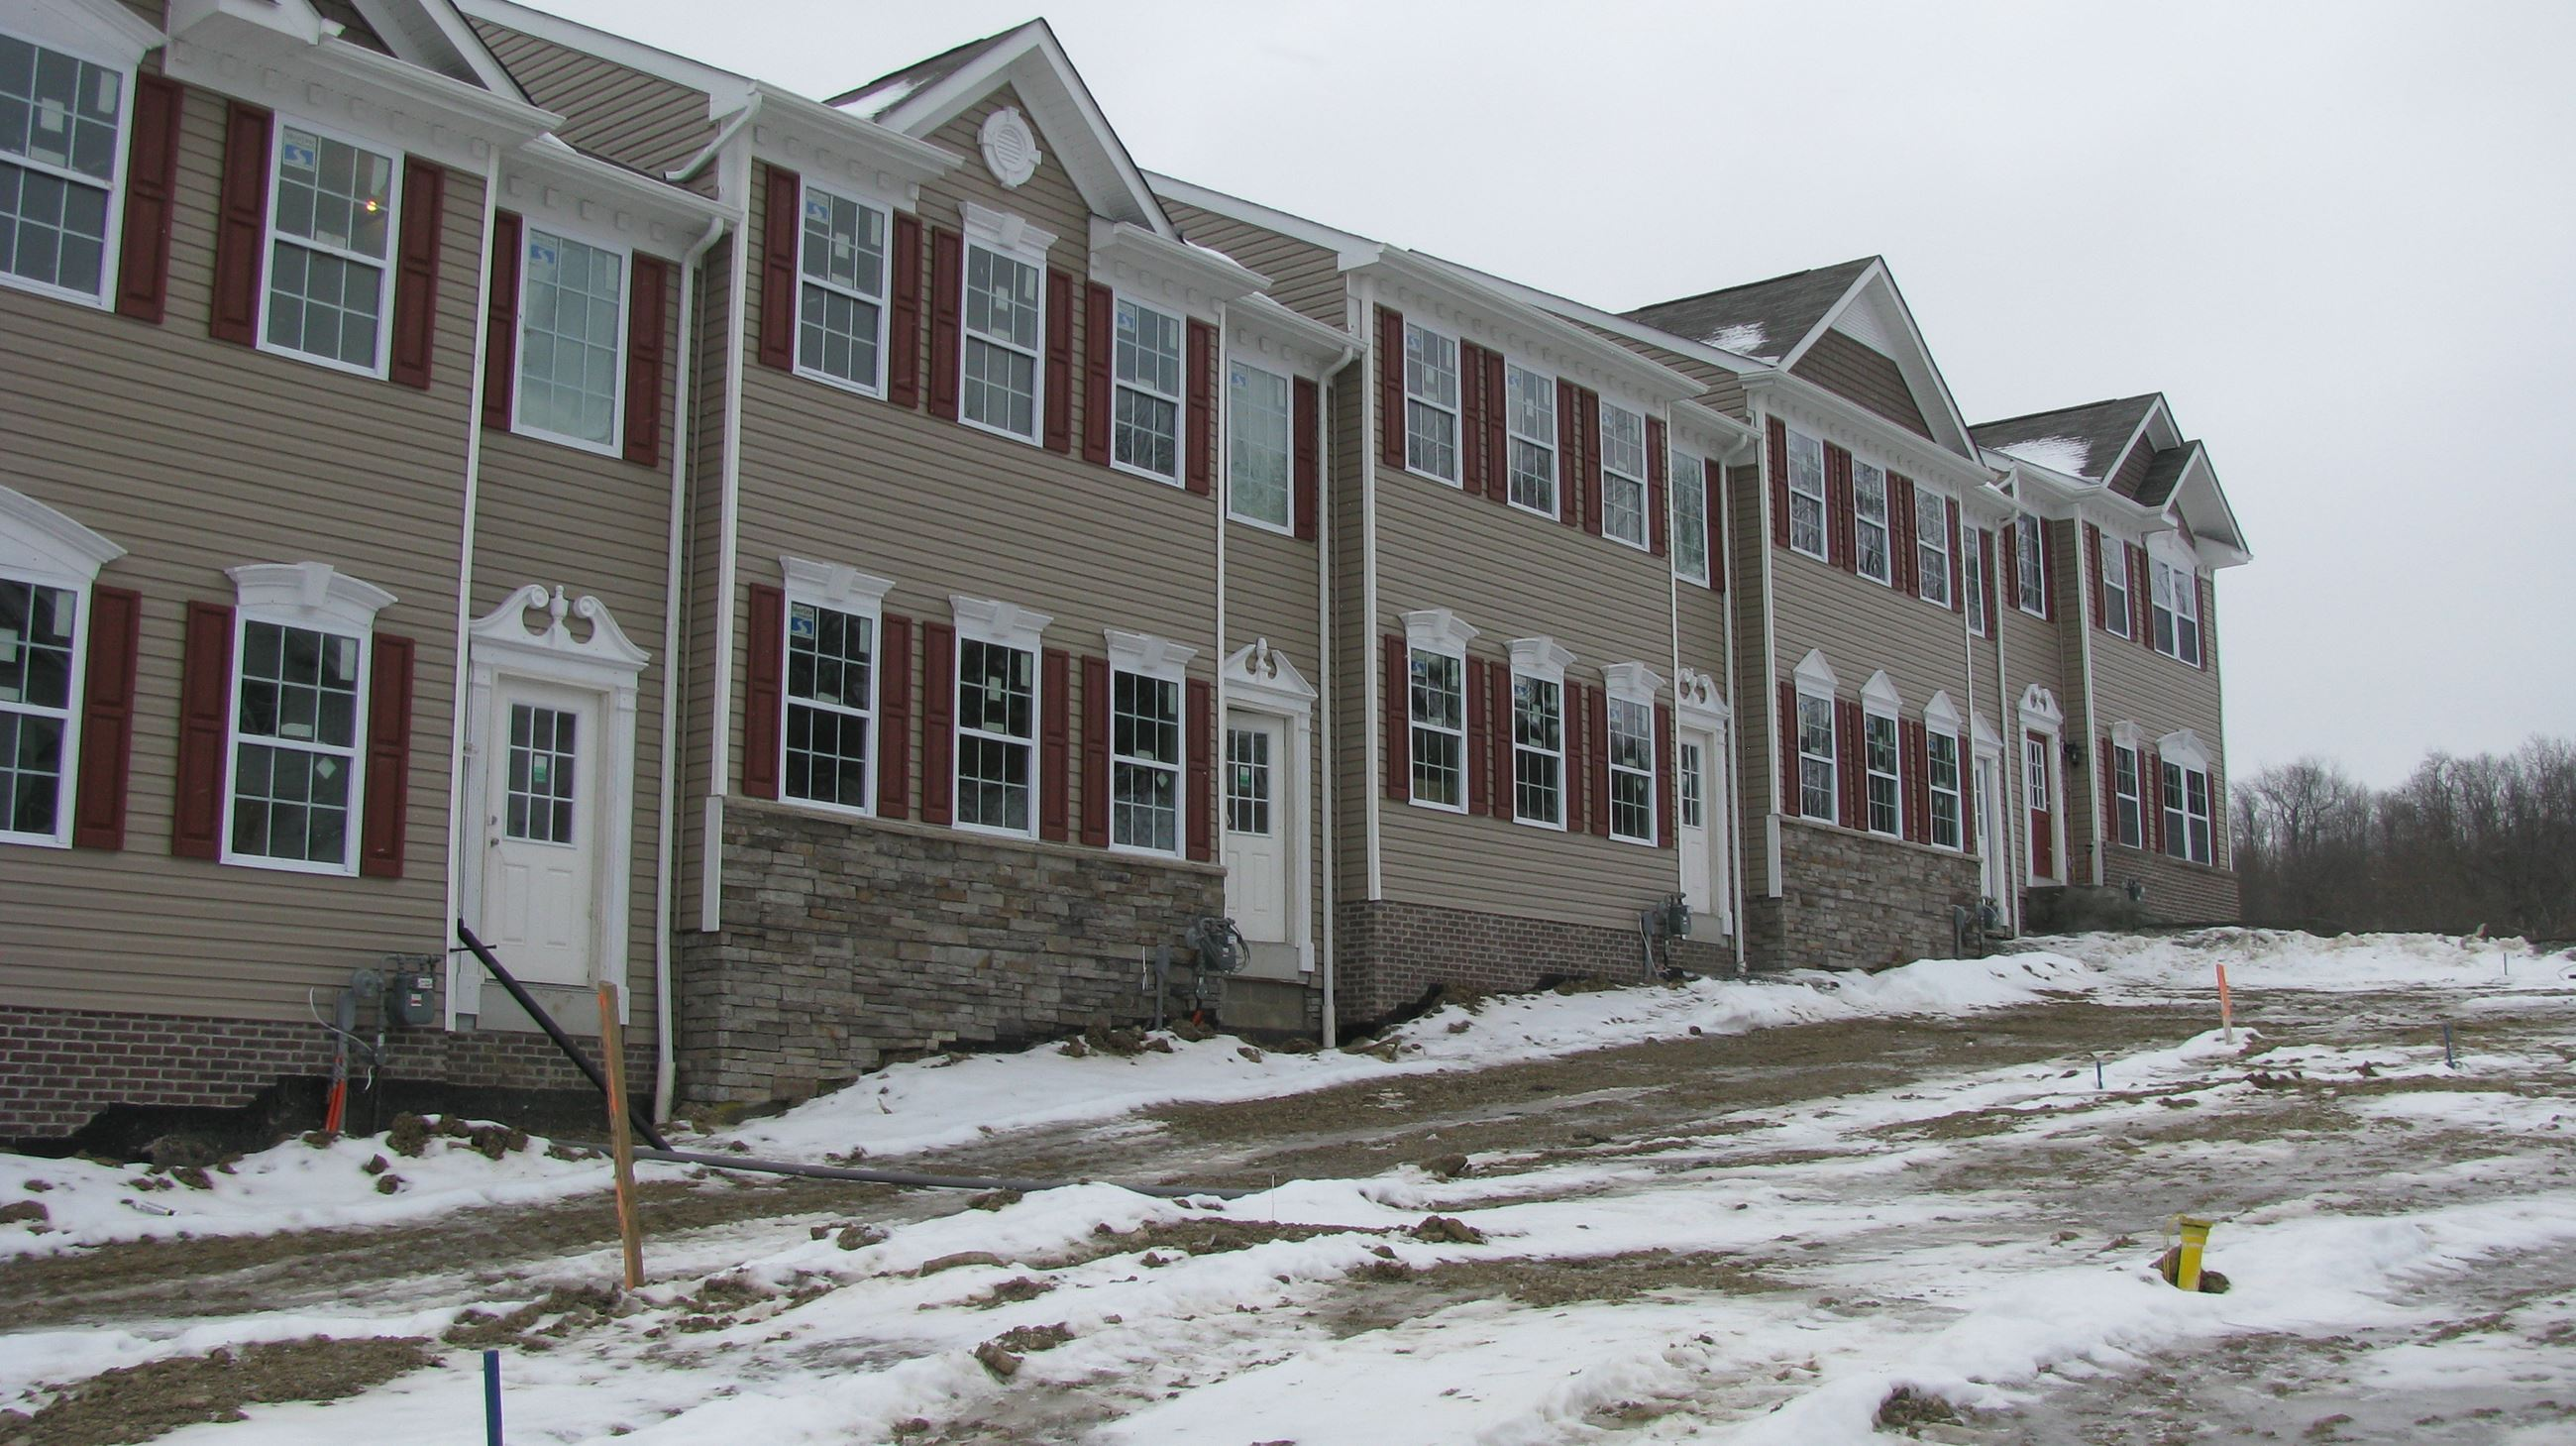 Townhomes in Winter